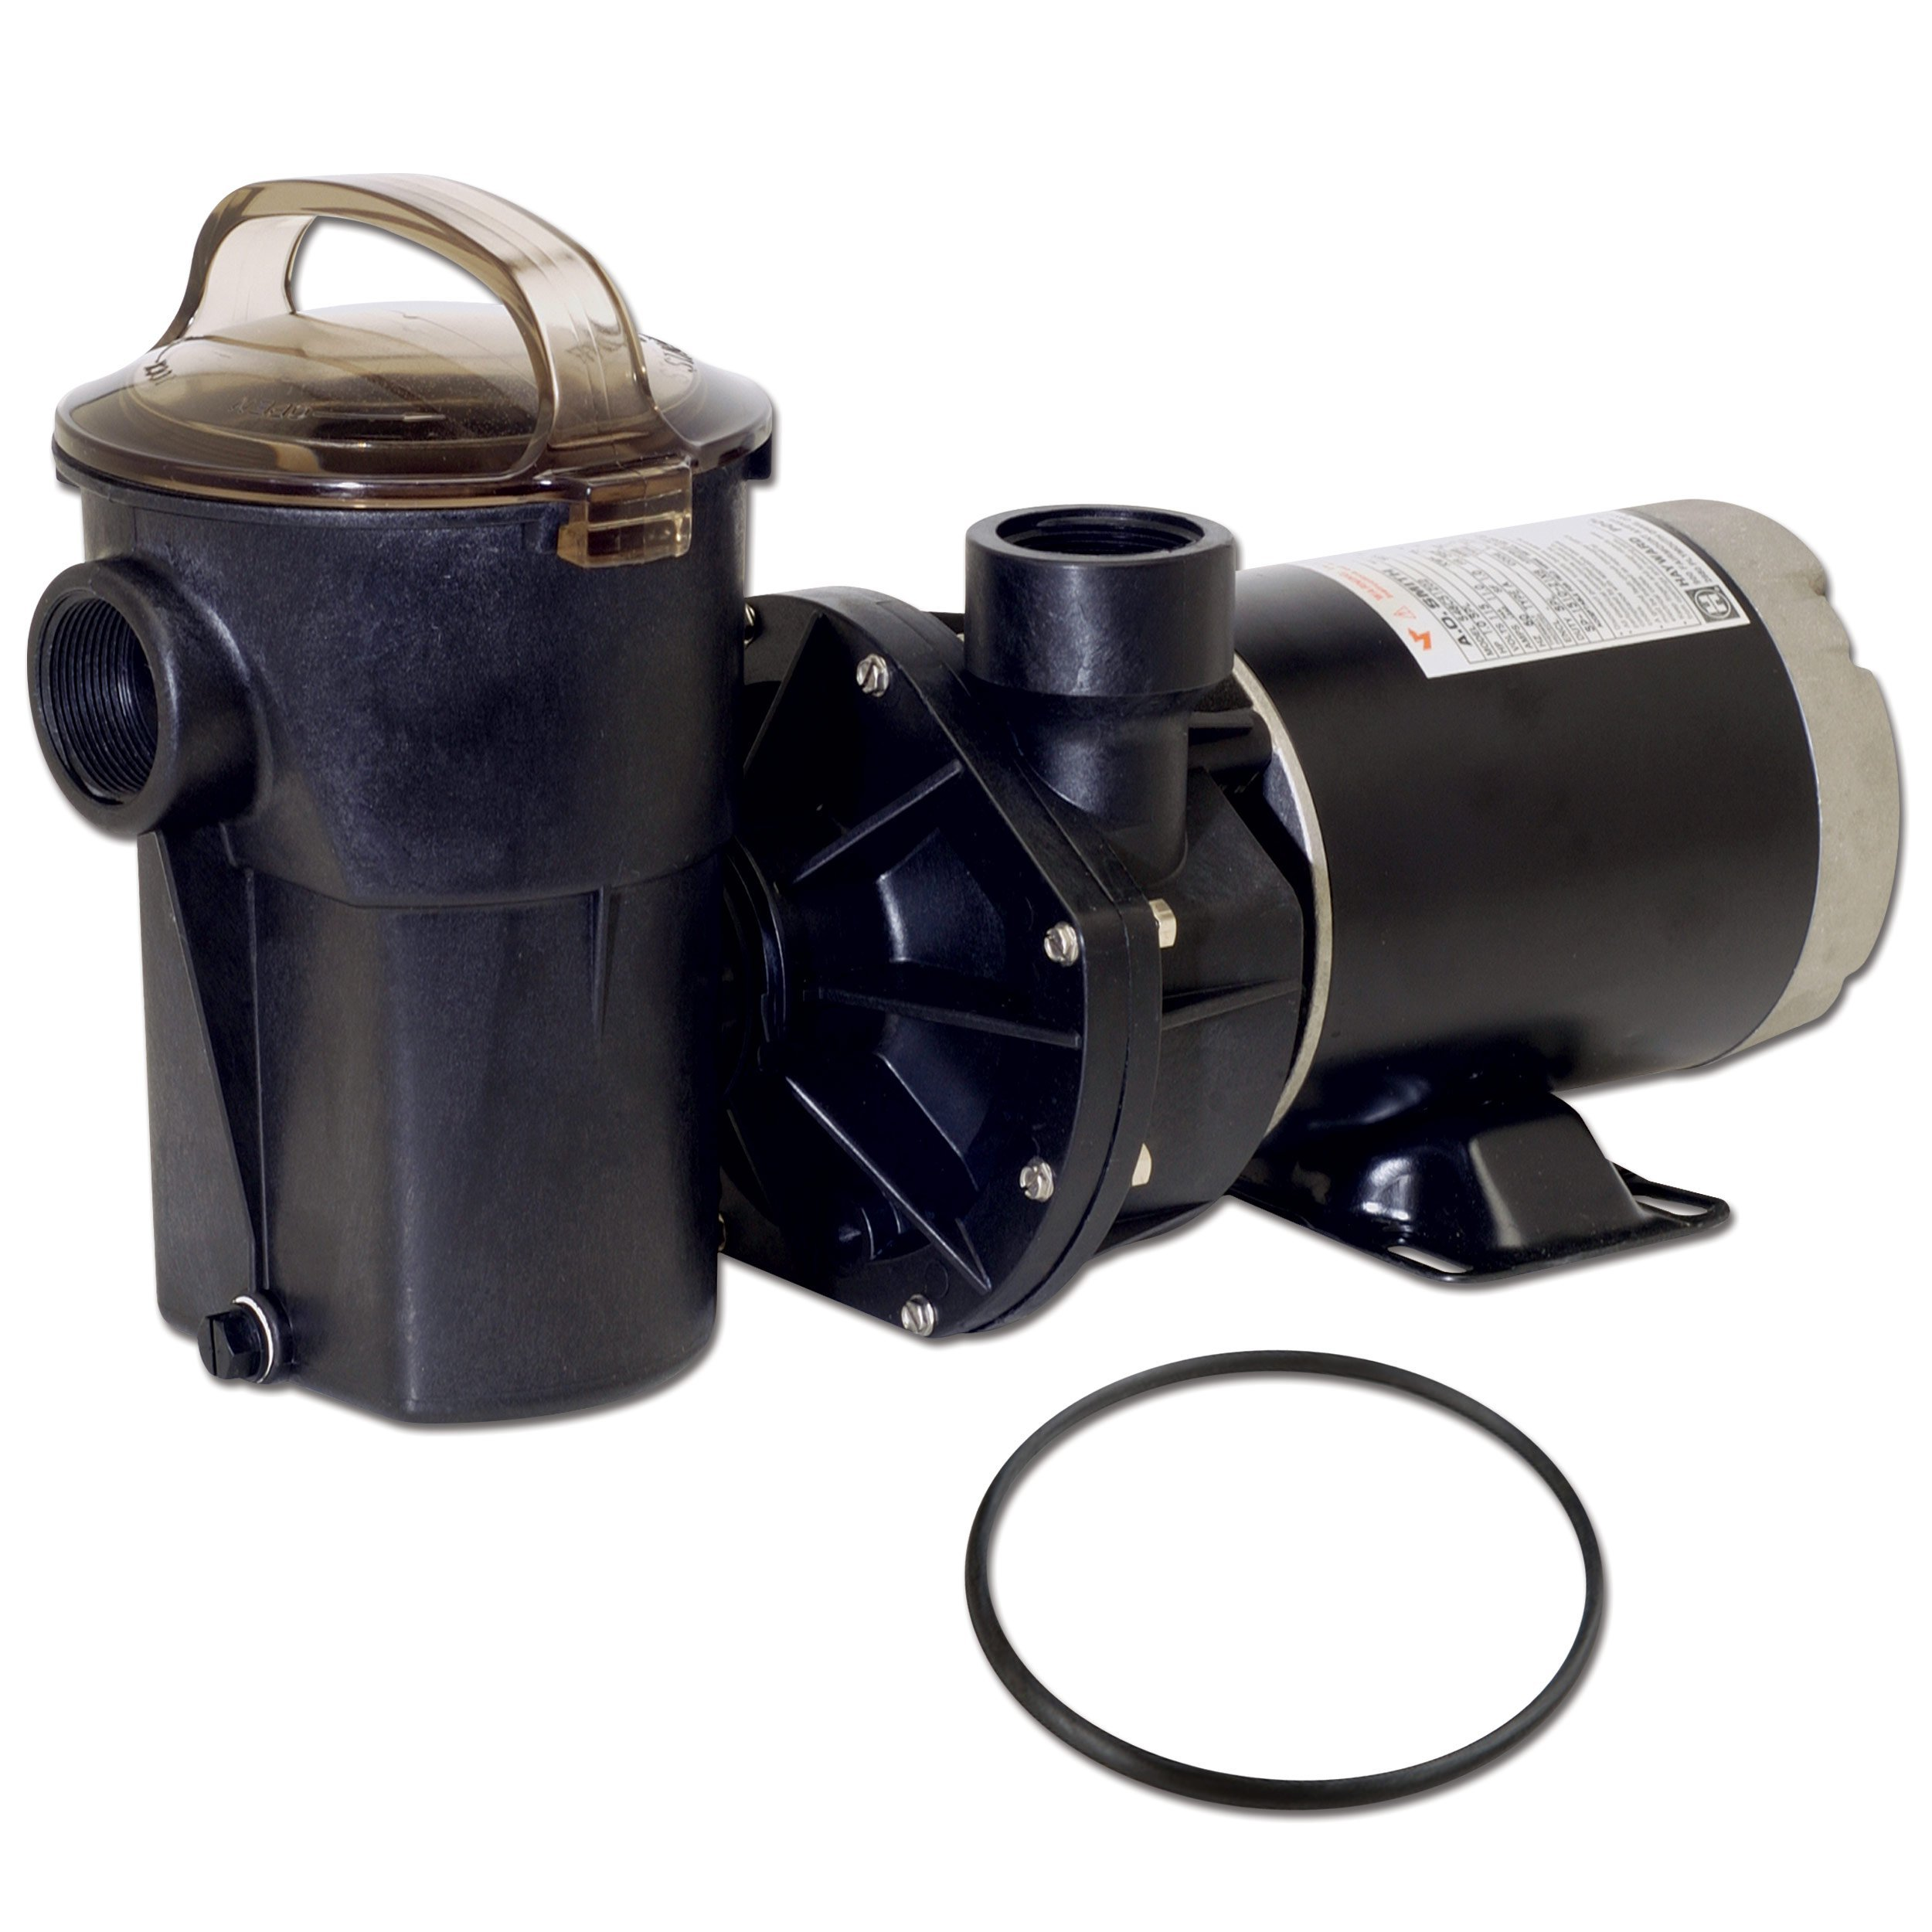 Hayward SP1580X15 Power-Flo LX Series 1-1/2-Horsepower Above-Ground Pool Pump with Cord and Replacement Lid O-Ring - 2 Item Bundle